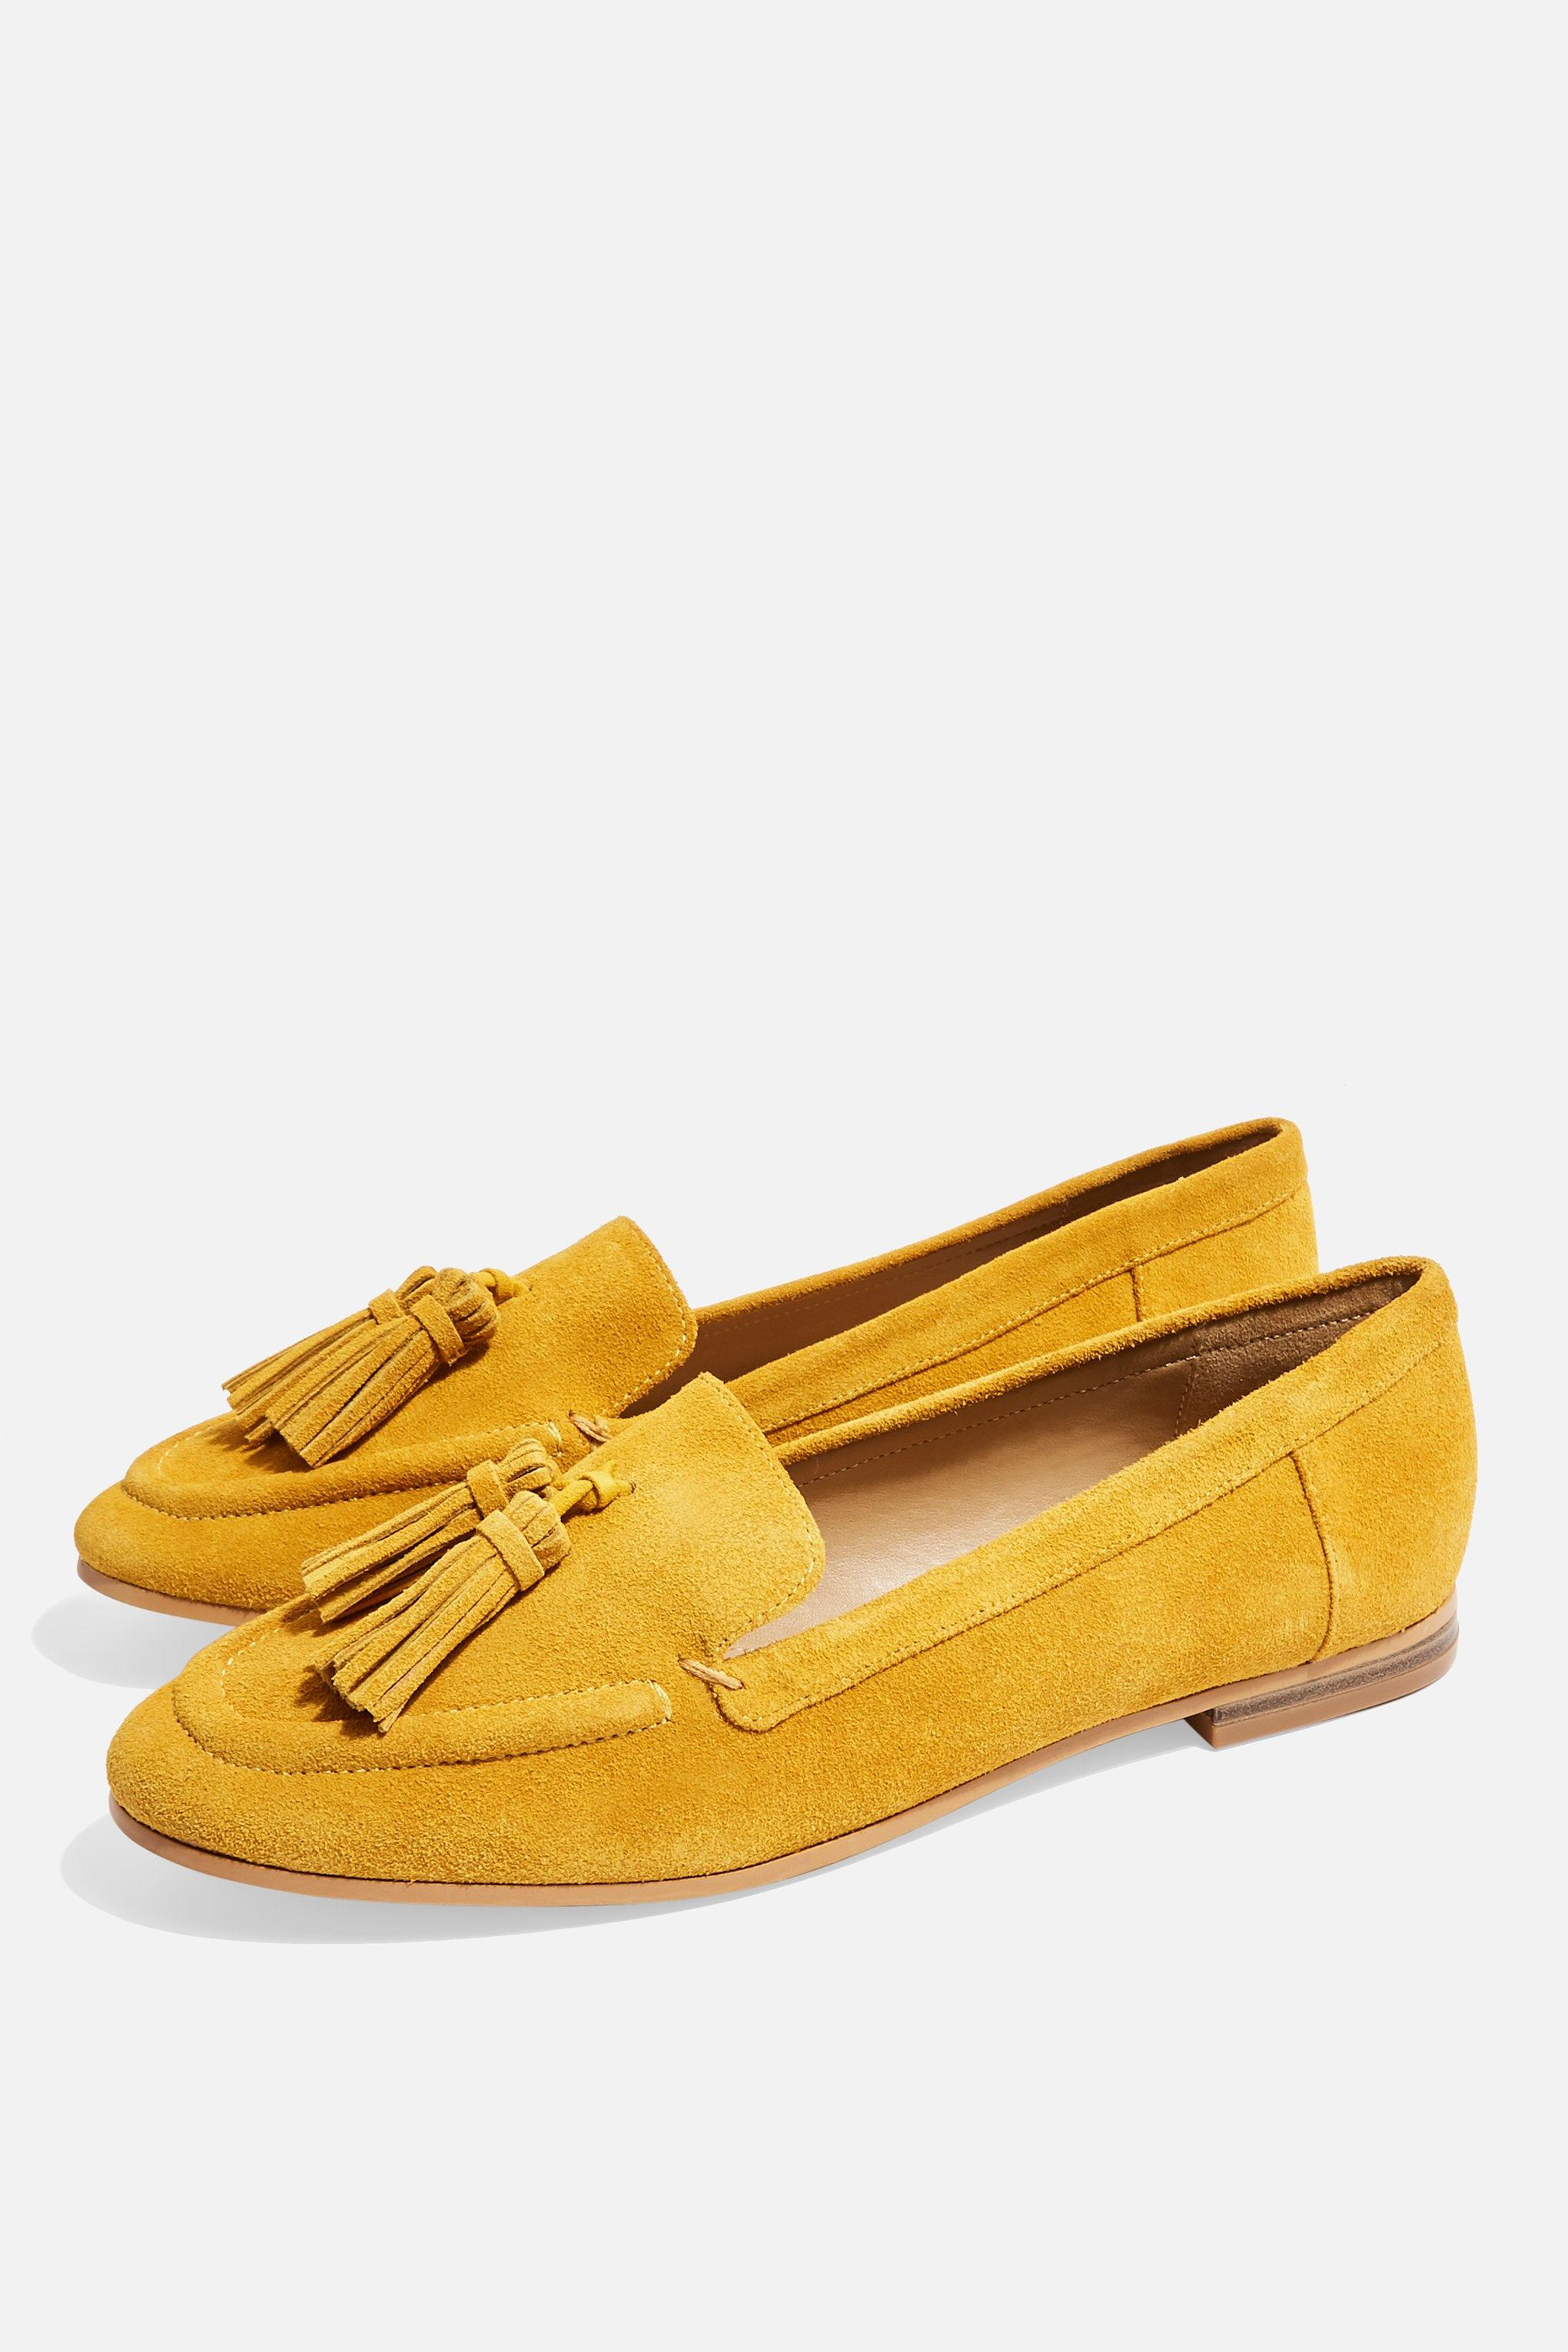 Lexi Suede Lyst Topshop In Loafers Yellow 5H5EwBrq